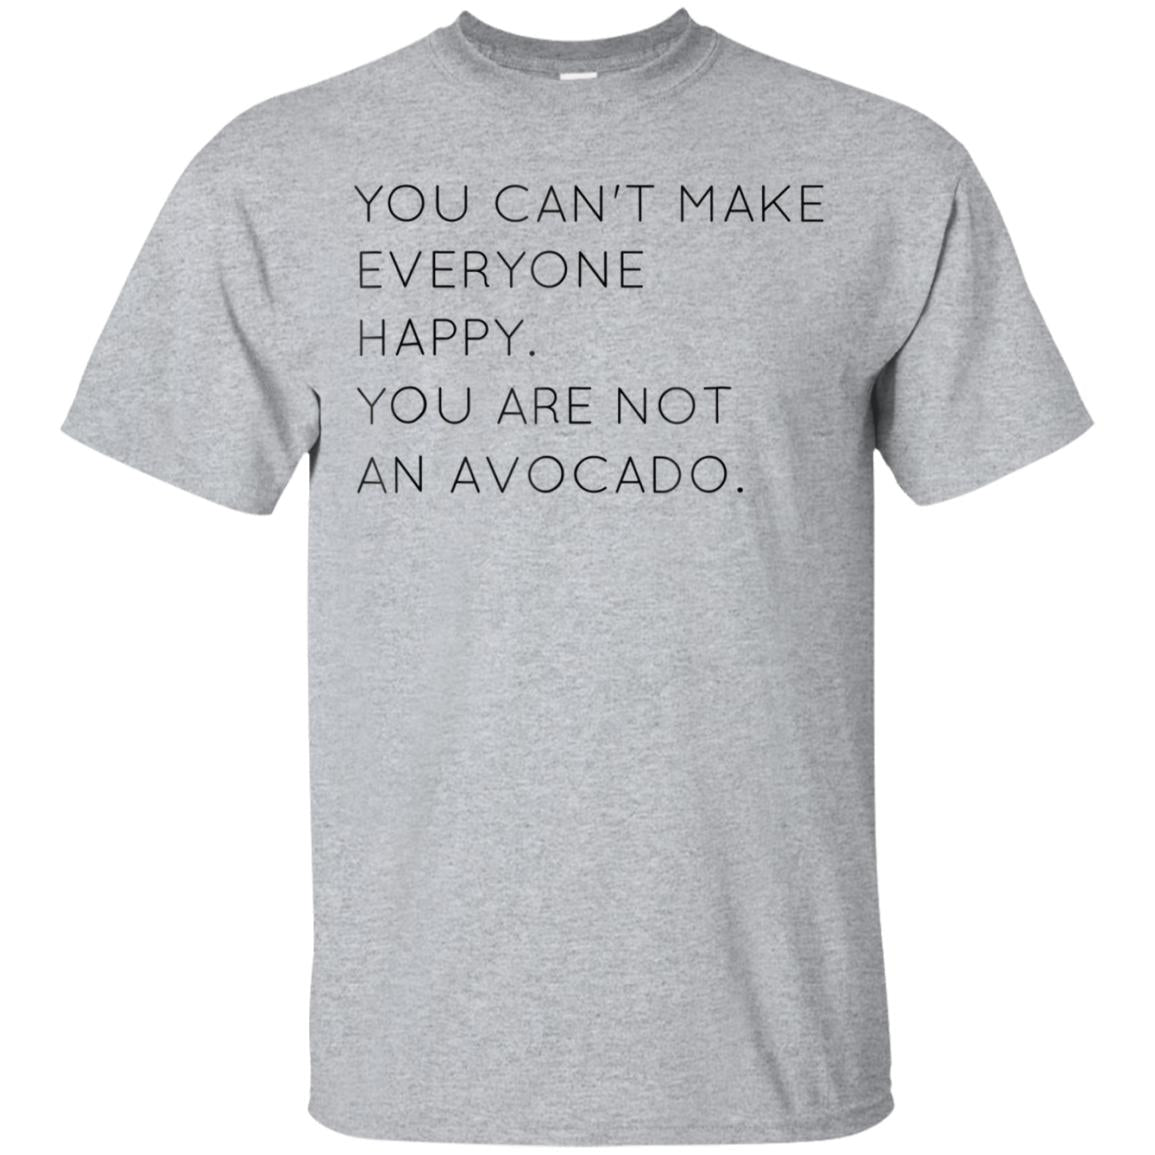 You Are Not An Avocado Shirt, Funny Avocado Shirt 99promocode